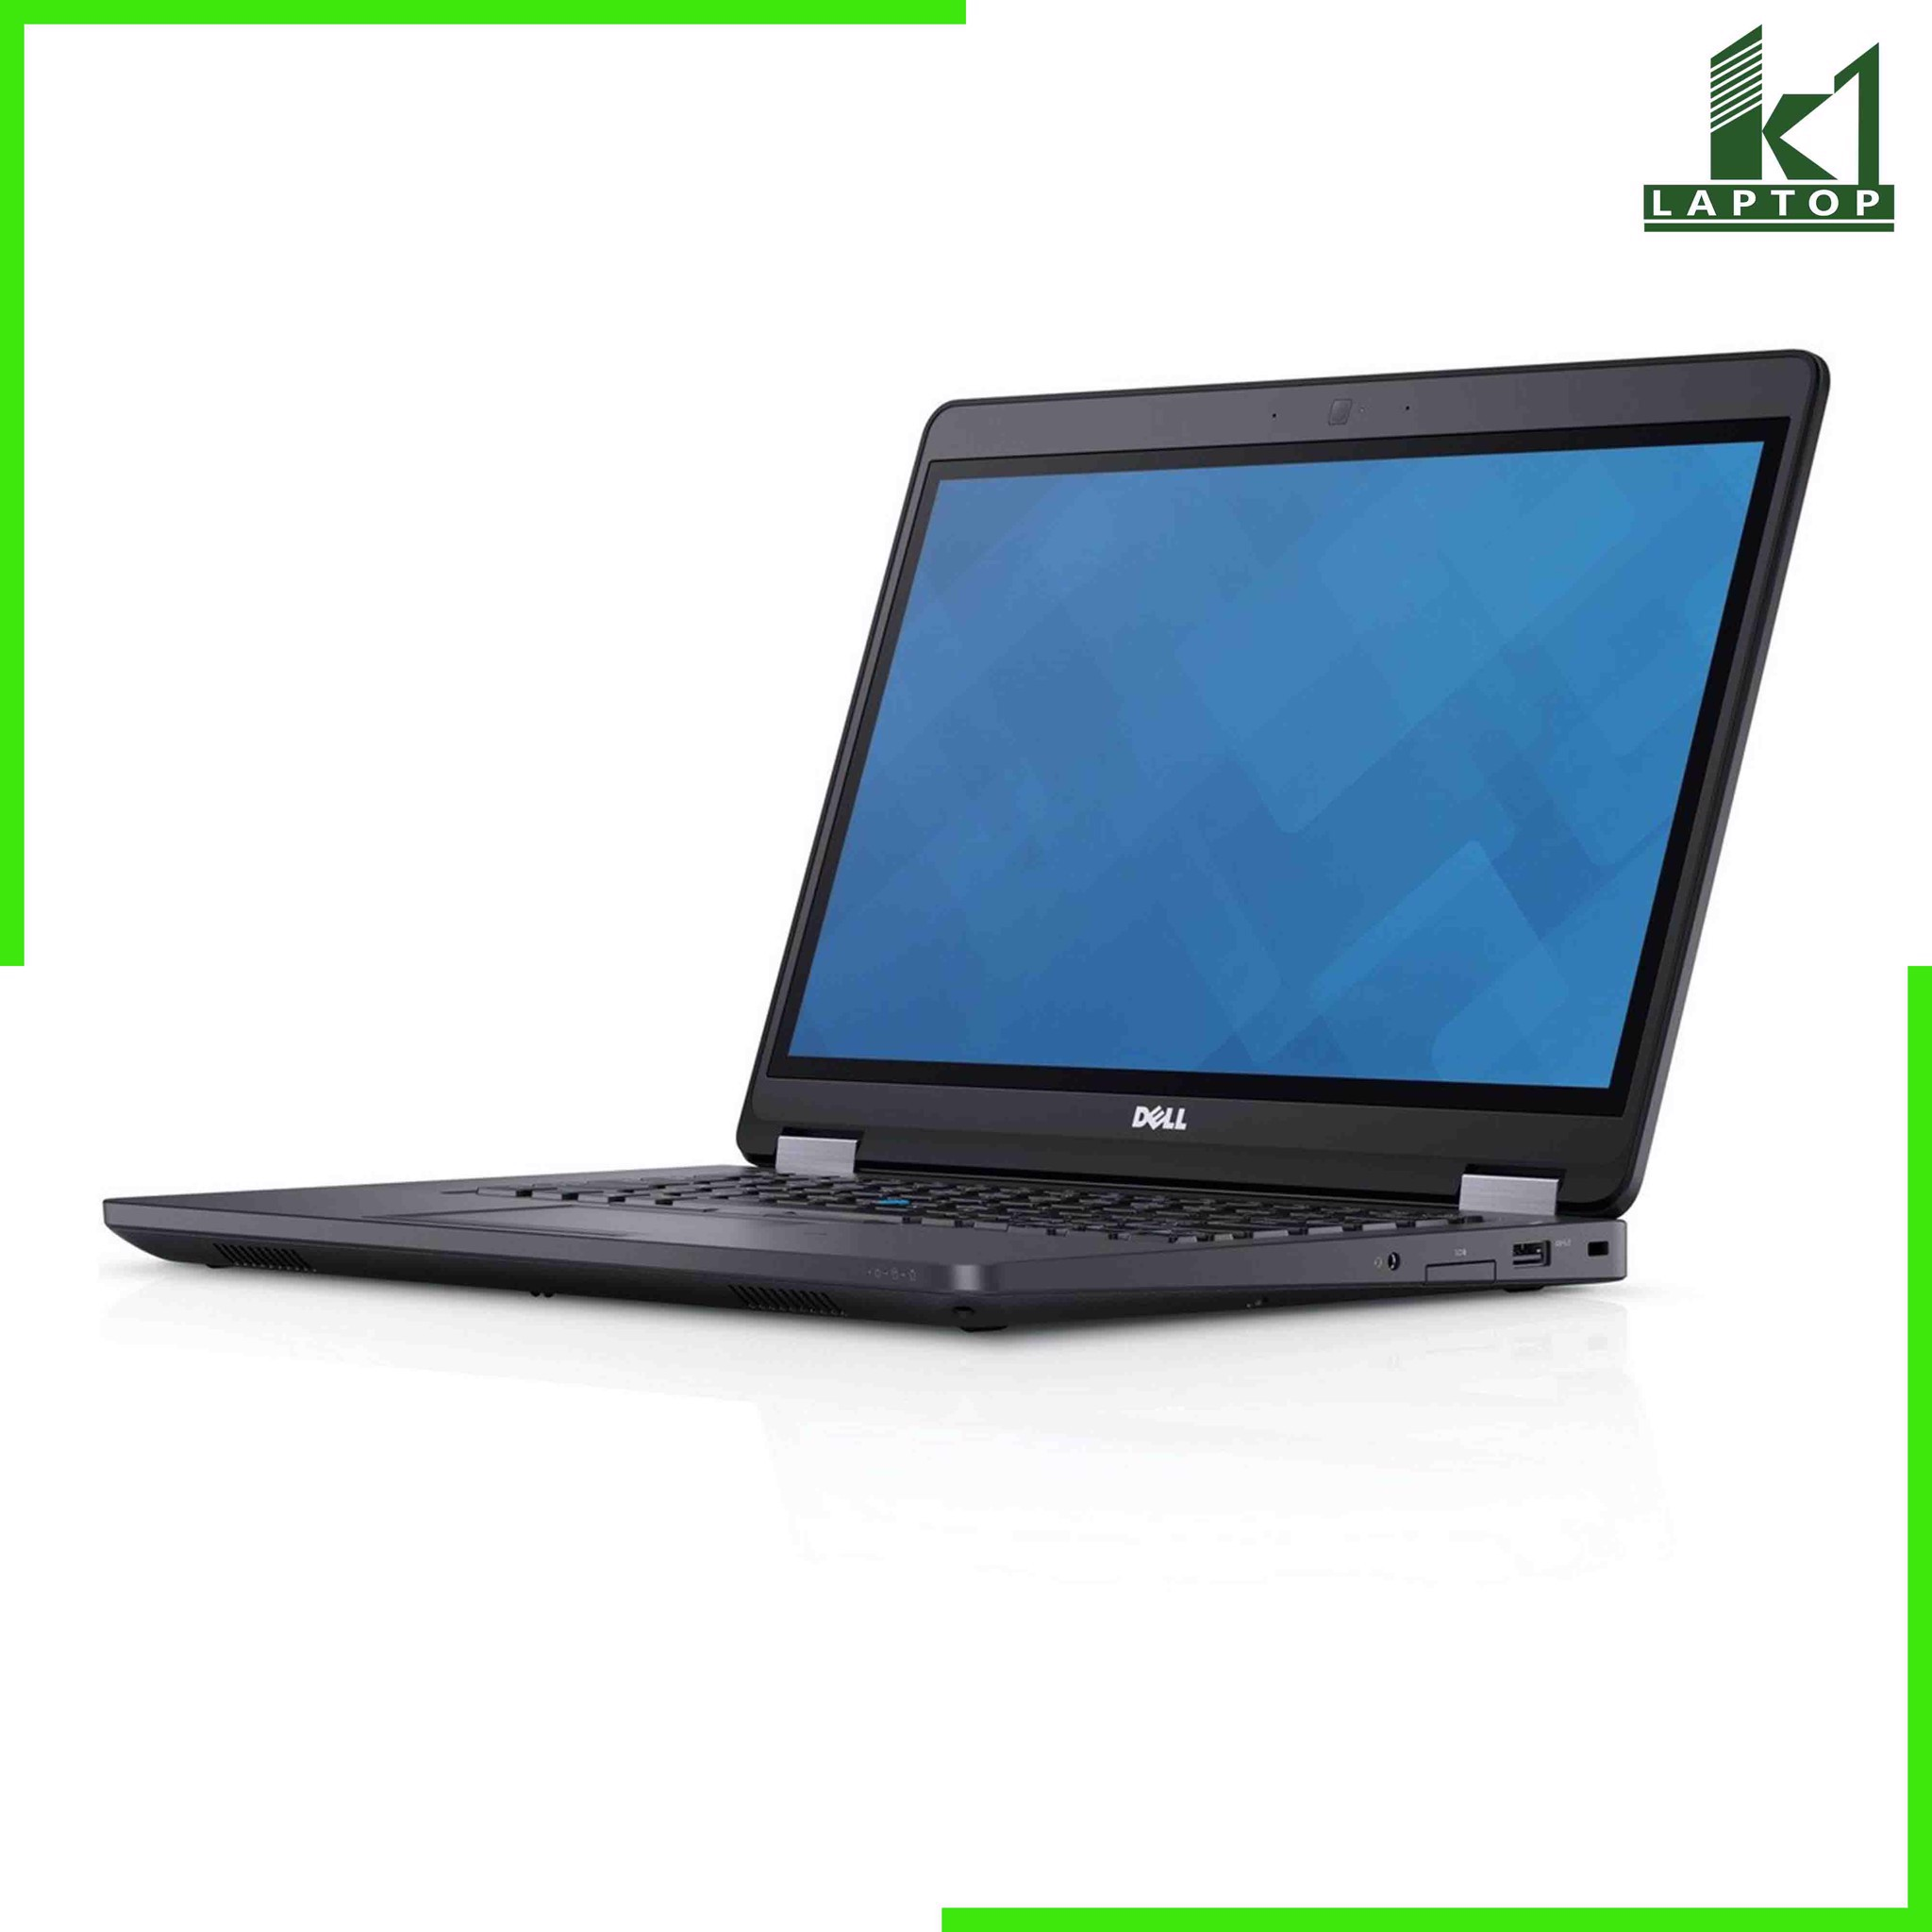 Laptop Cũ Dell Latitude 5470 - Intel Core i5